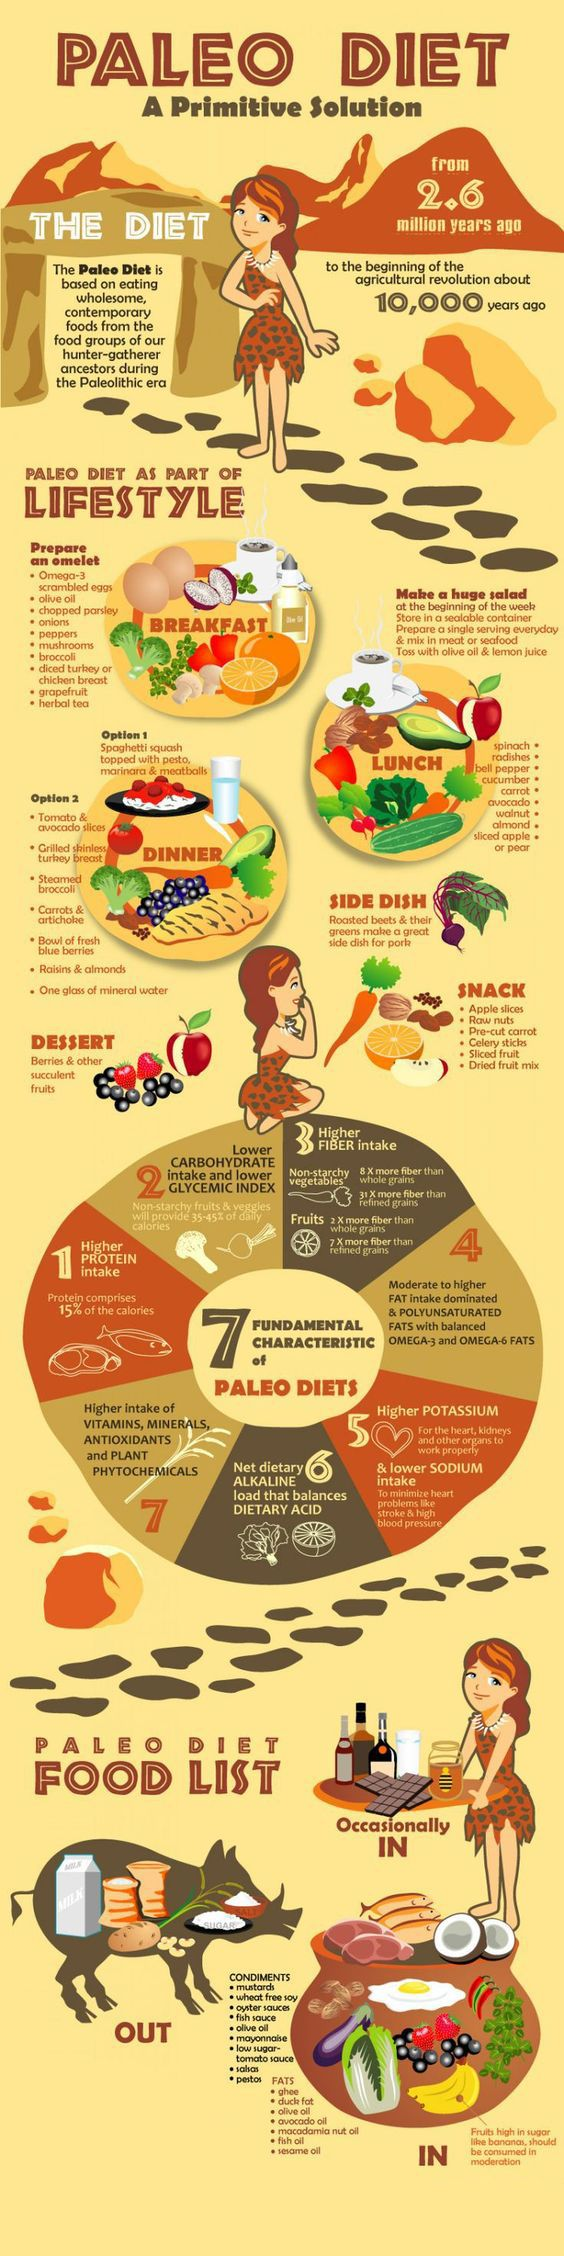 Paleo Diet is one of the healthiest ways to achieve a lean body. People from different medical fields have hailed Paleo Diet as one of the most effective means to treat uprising and deteriorating diseases-Paleo-Diet #infographie #eatclean #fitfood #recipes #cleaneating #detox #health #fitness #nutrition #diy #hack #diet #MostEffectiveDetoxDiet